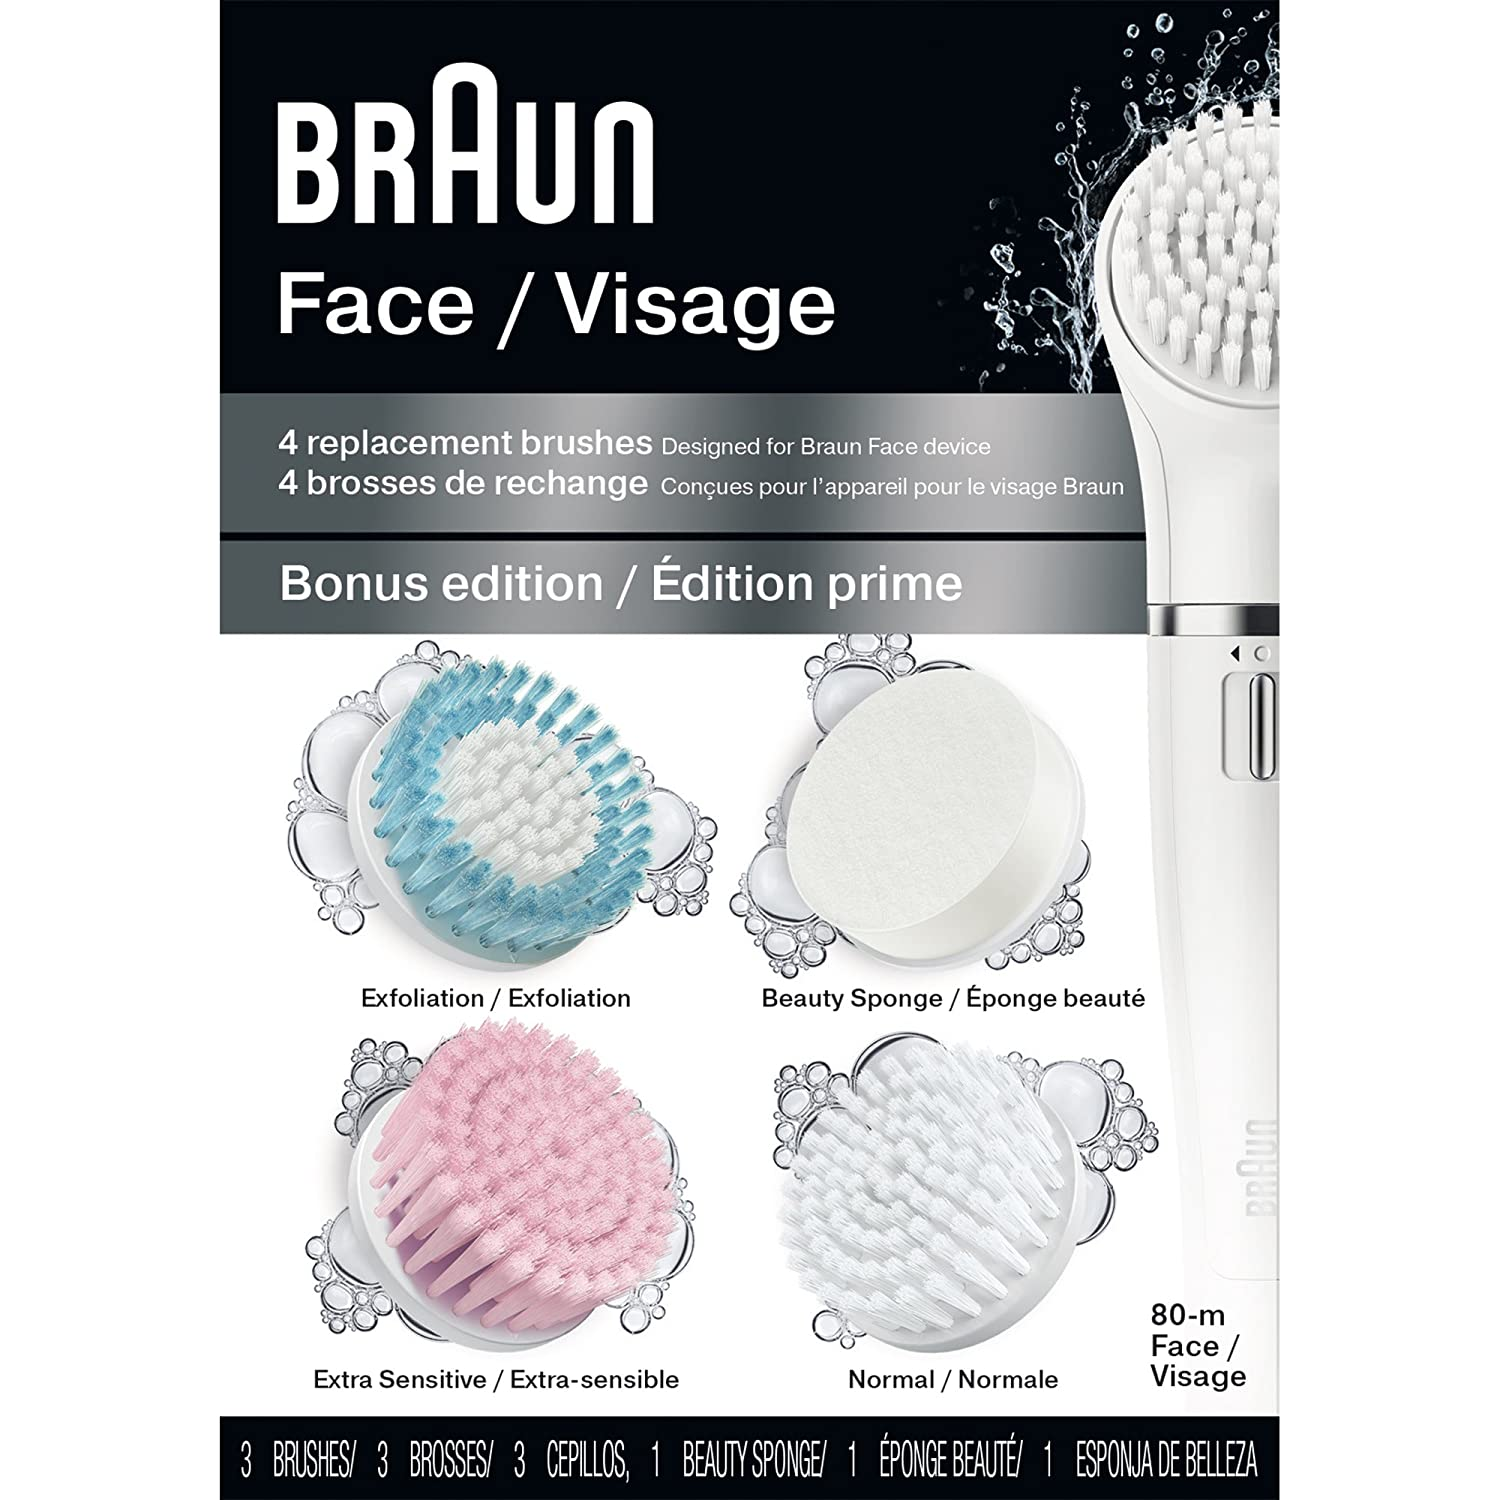 Braun Face 80M - Variety Brush Refills for Braun Mini-Facial Electric Hair Removal Epilator with Facial Cleansing Brush for Women, 4 Count AB-133731